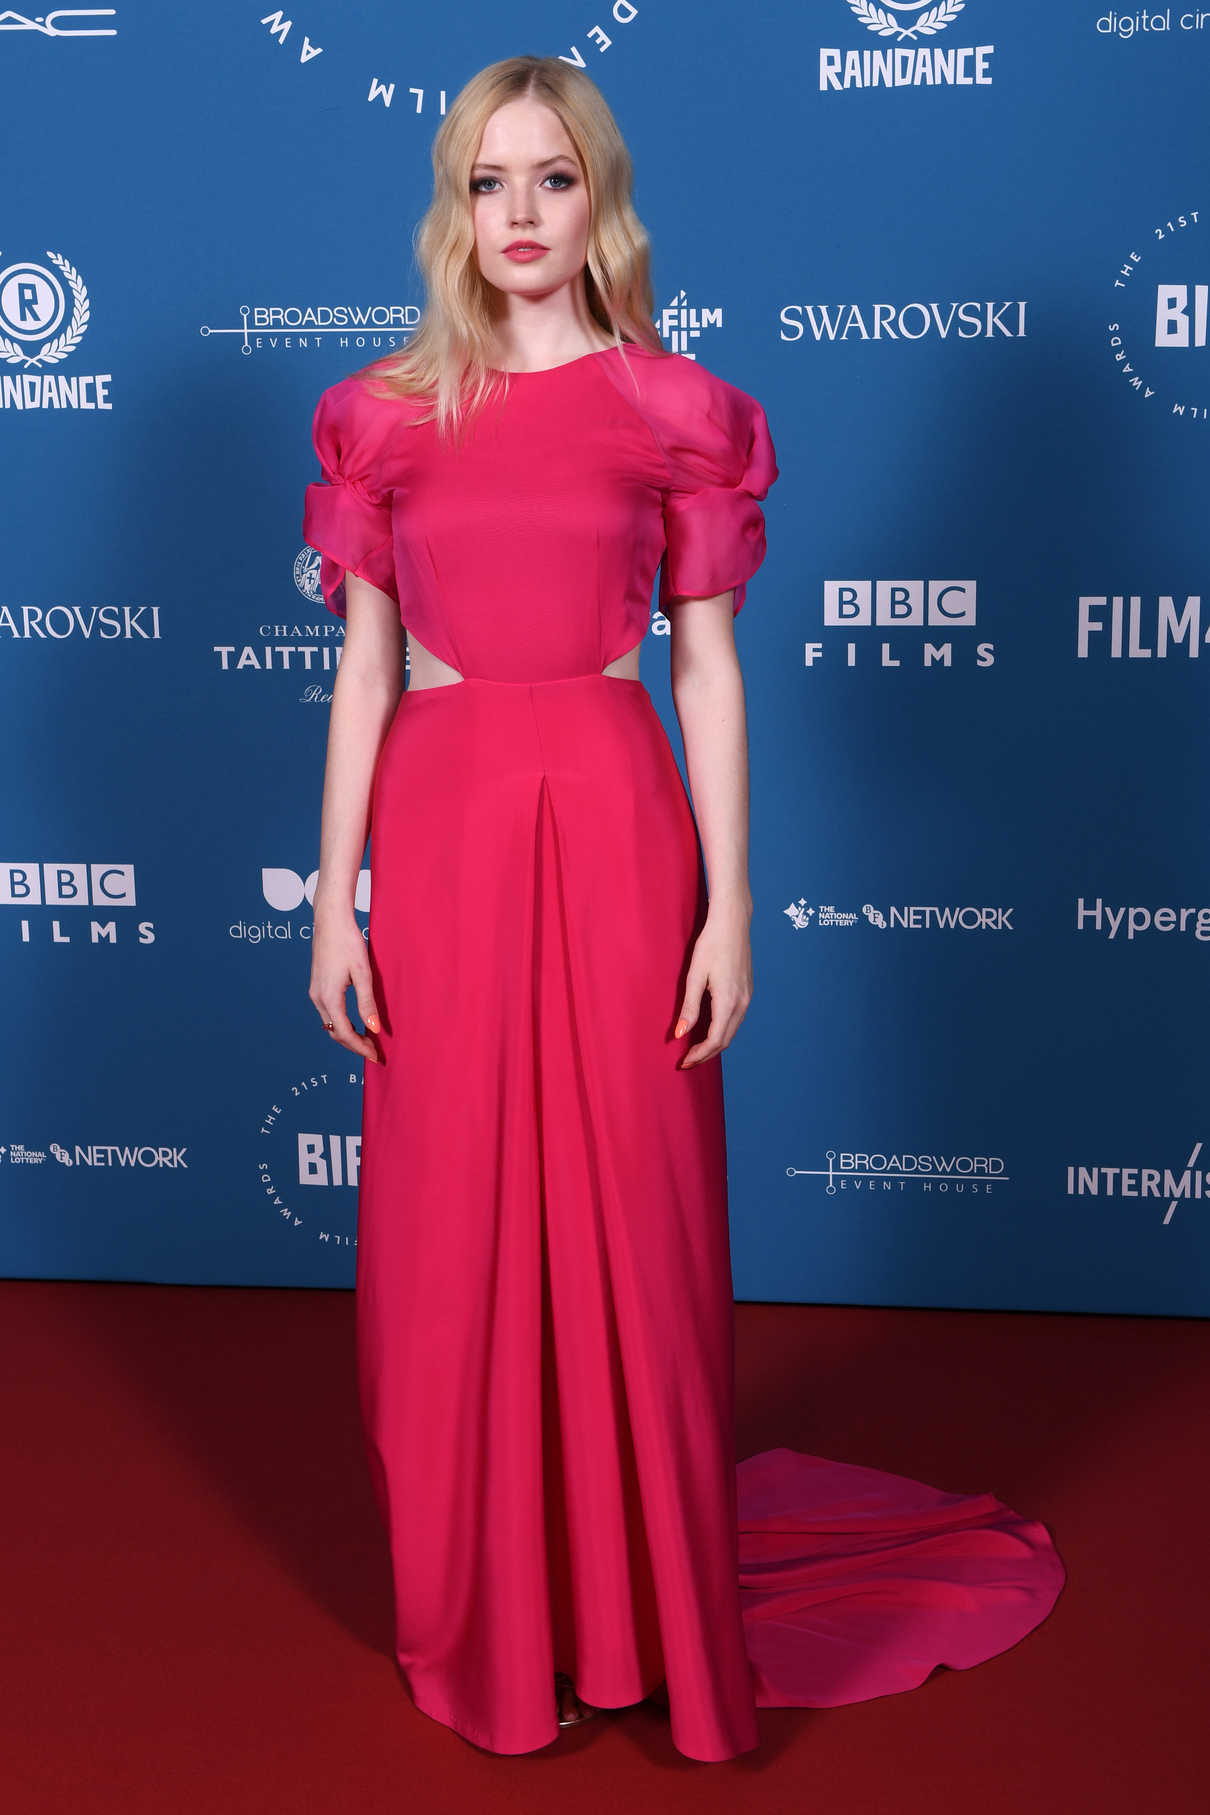 Ellie Bamber Attends the 21st British Independent Film Awards in London 12/02/2018